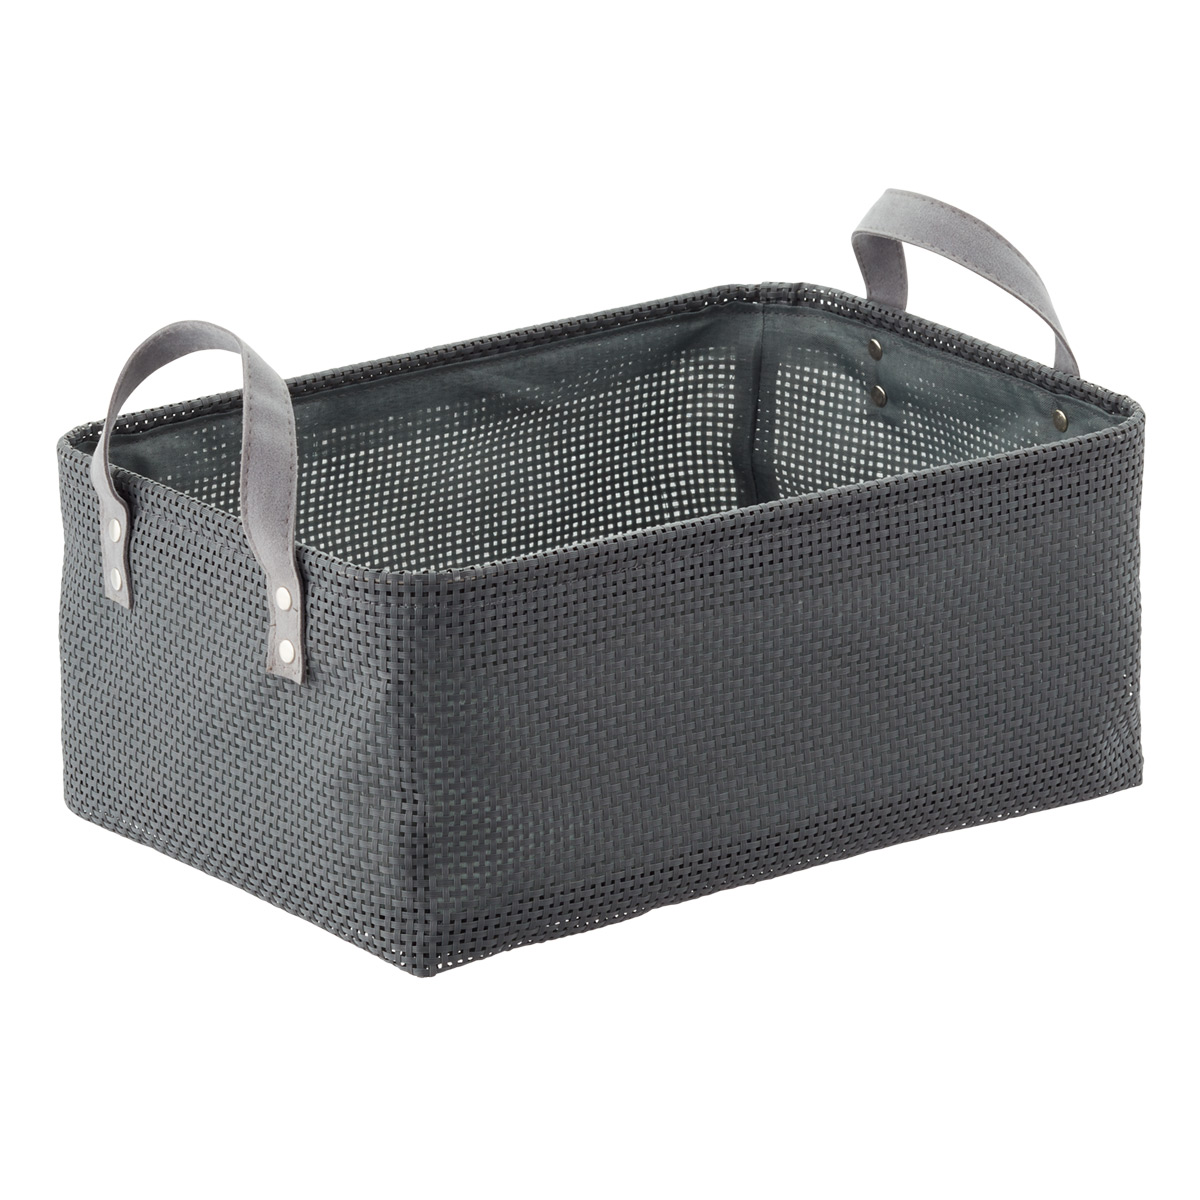 Grey Kiva Foldable Bin with Handles